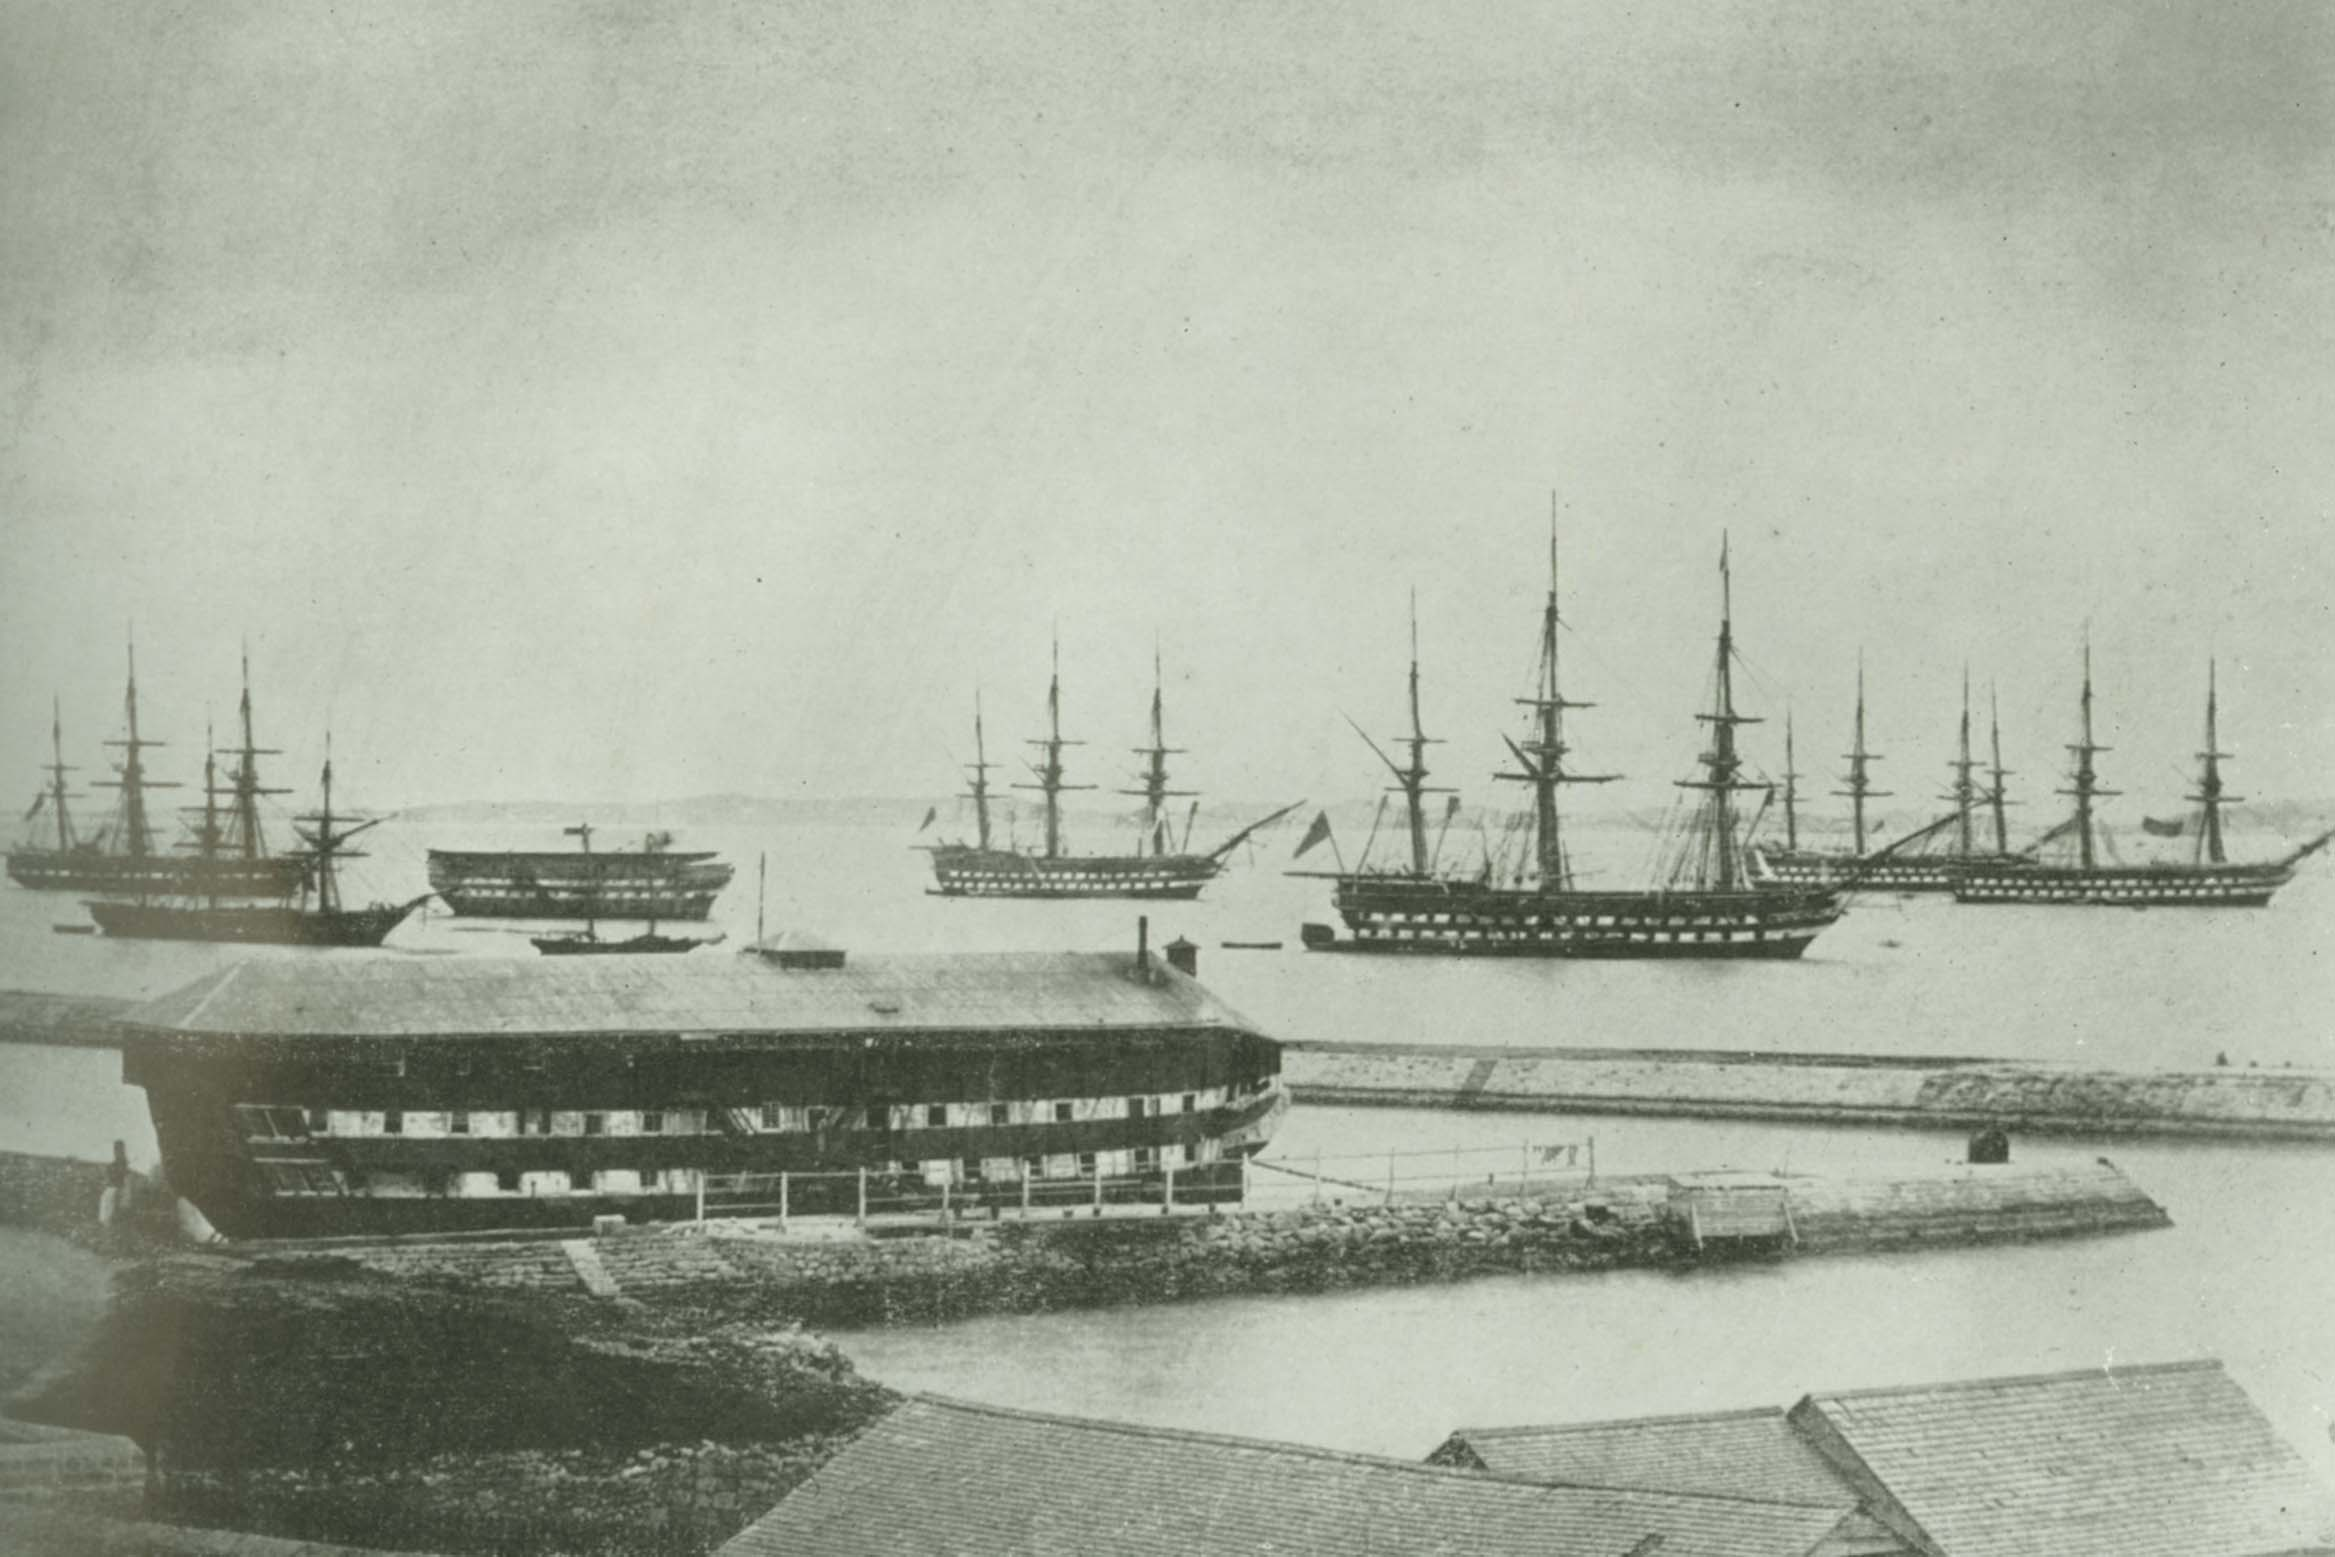 British fleet in Grassy Bay in 1862 with convict hulk. Photo source: National Museum of Bermuda.